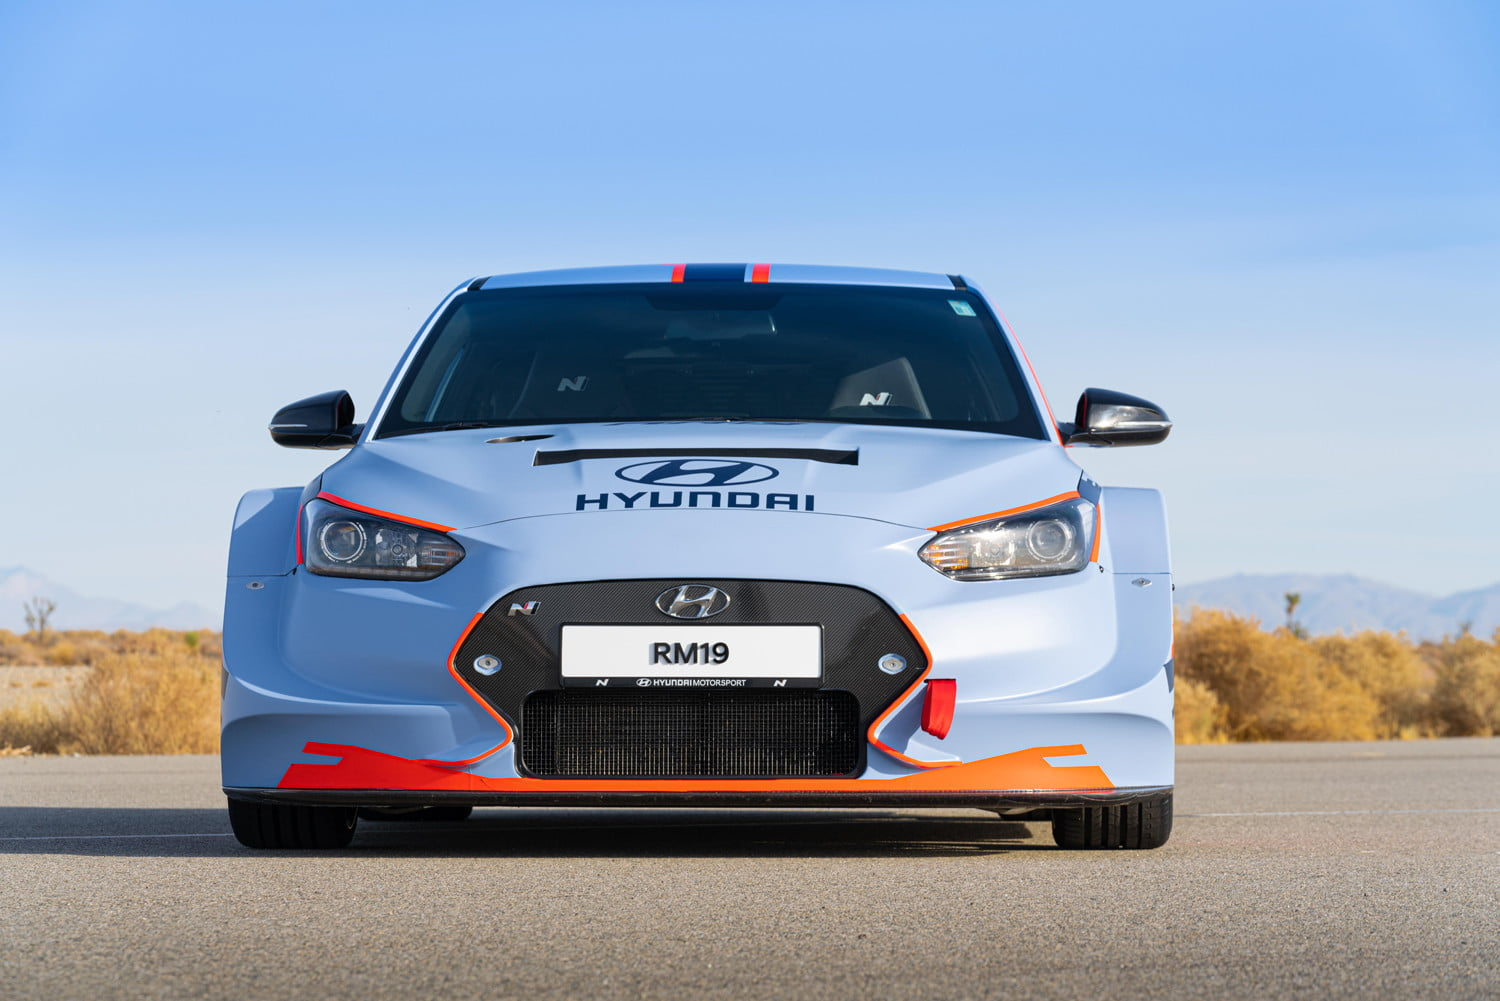 mid engined hyundai rm19 hot hatch unveiled at los angeles auto show 6